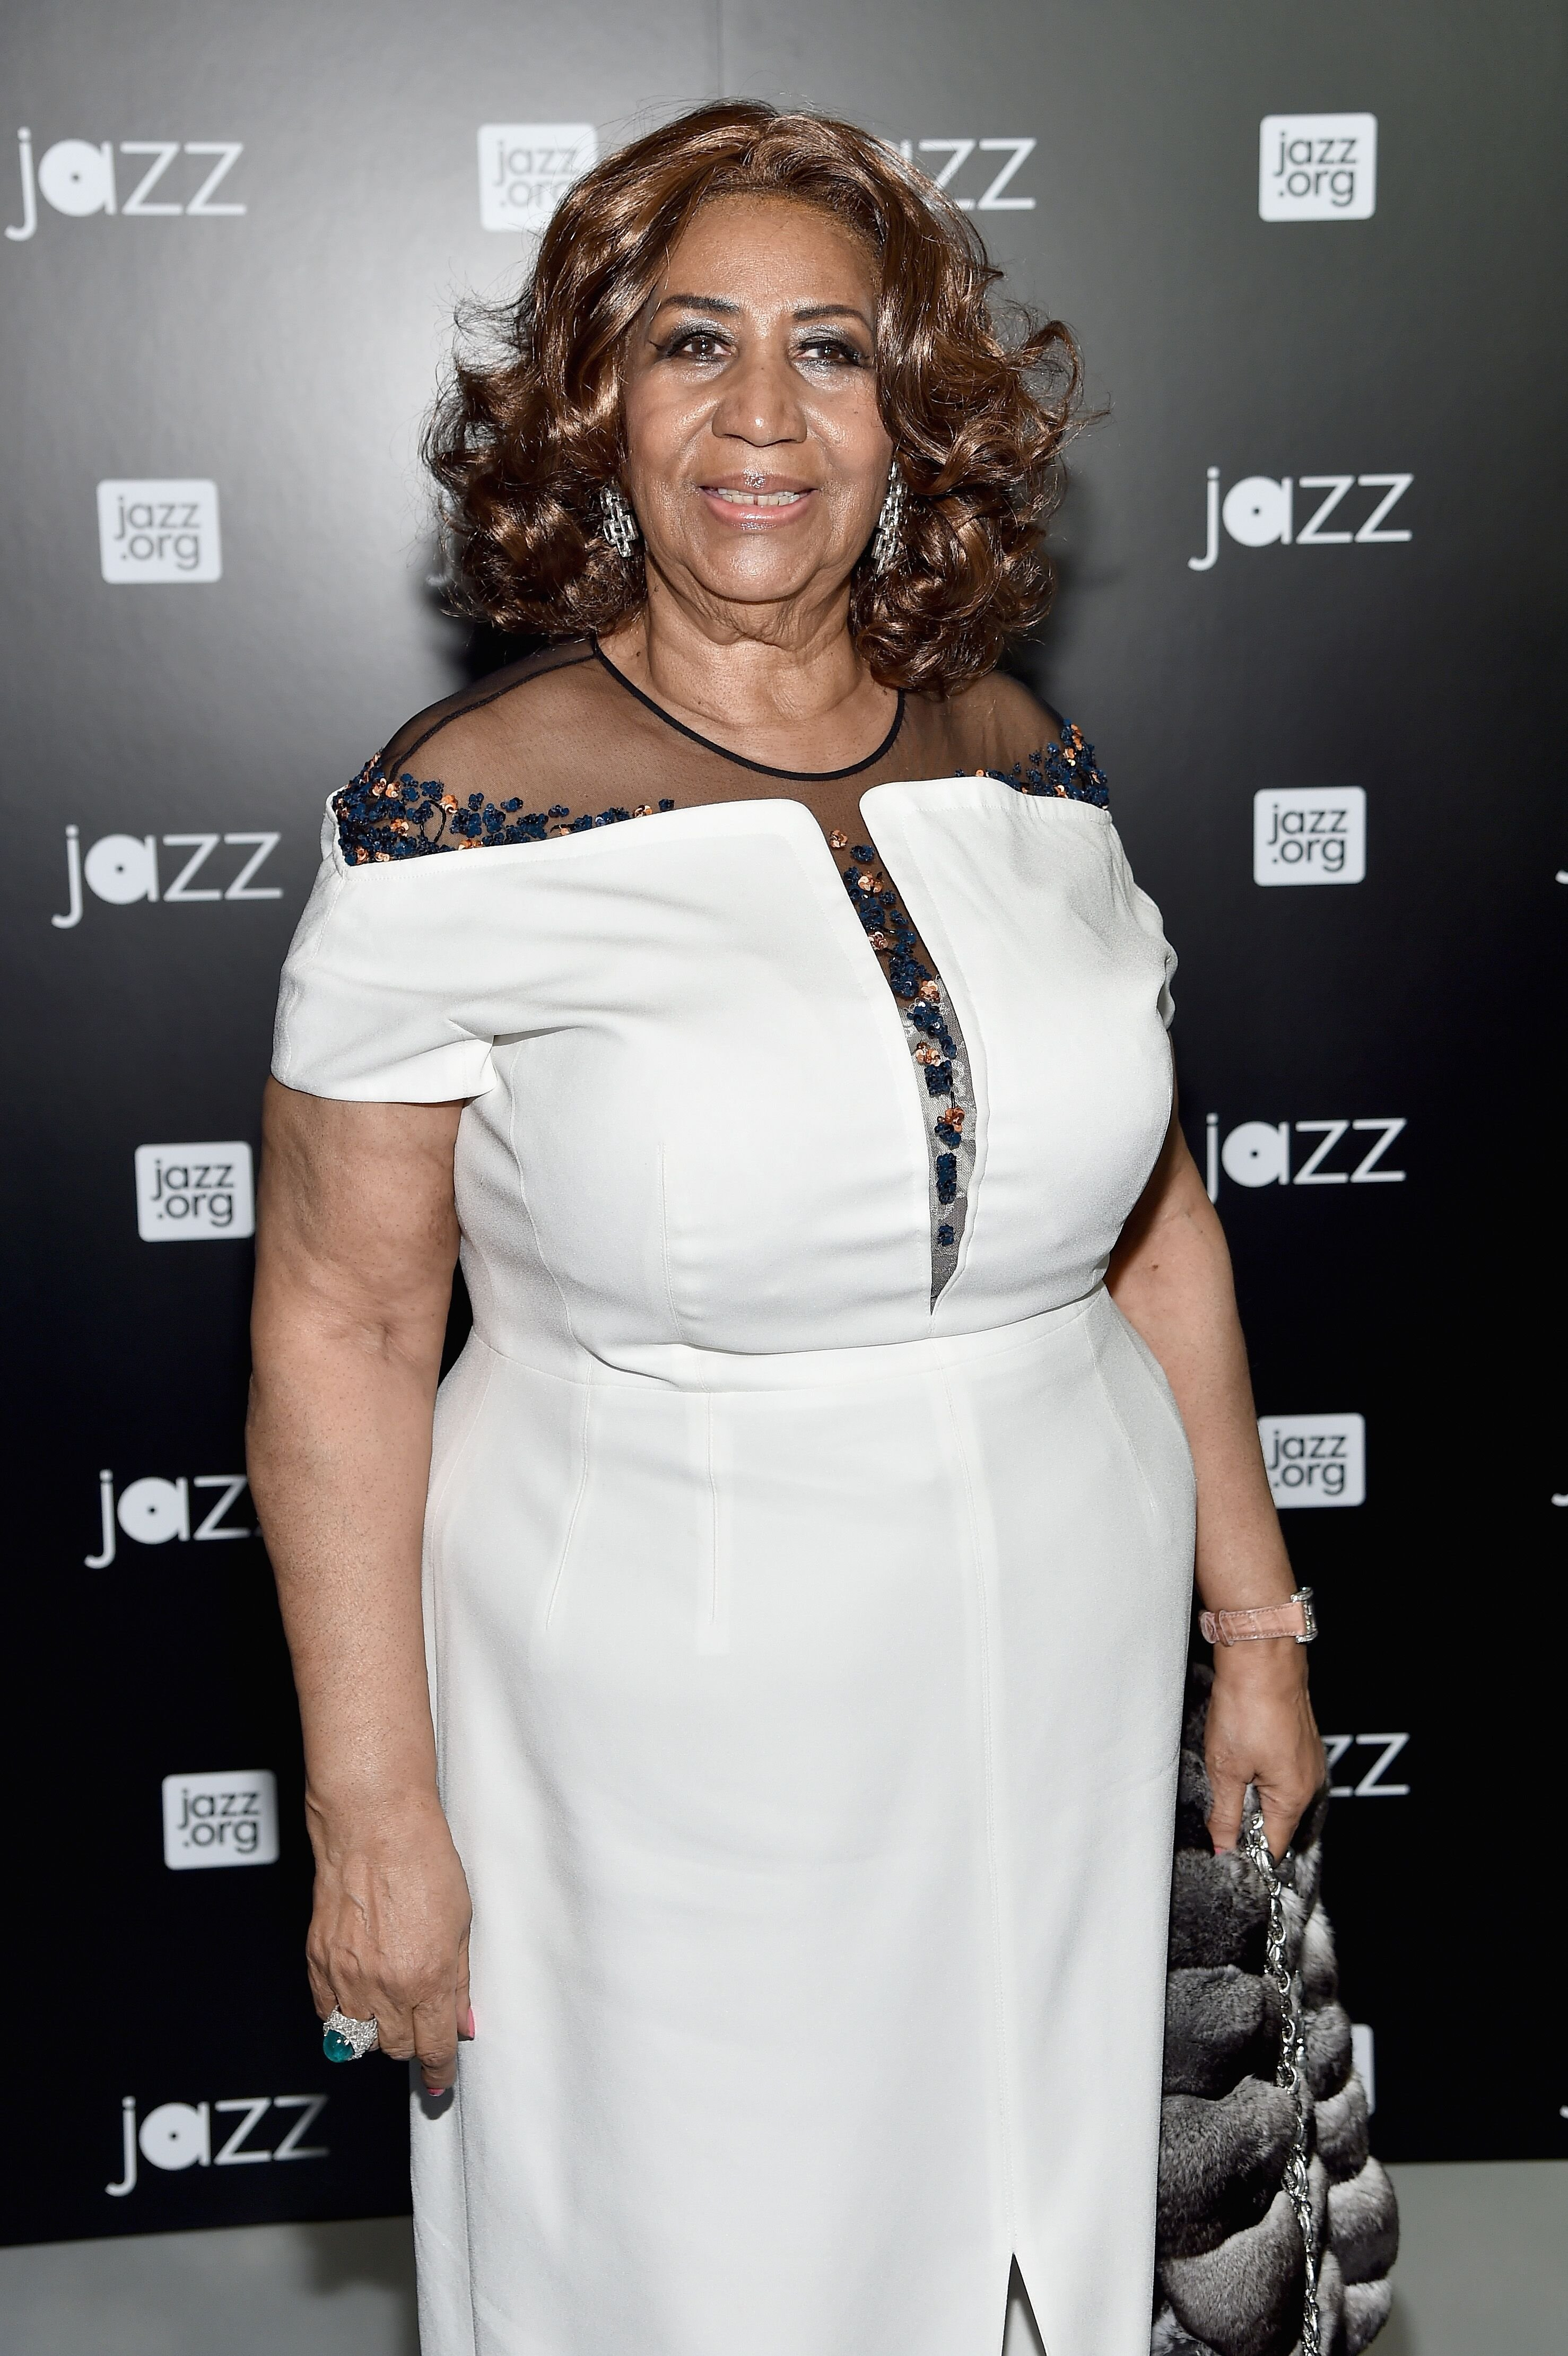 Musician Aretha Franklin attends the opening of the Mica and Ahmet Ertegun Atrium at Jazz at Lincoln Center on December 17, 2015 in New York City | Photo: Getty Images